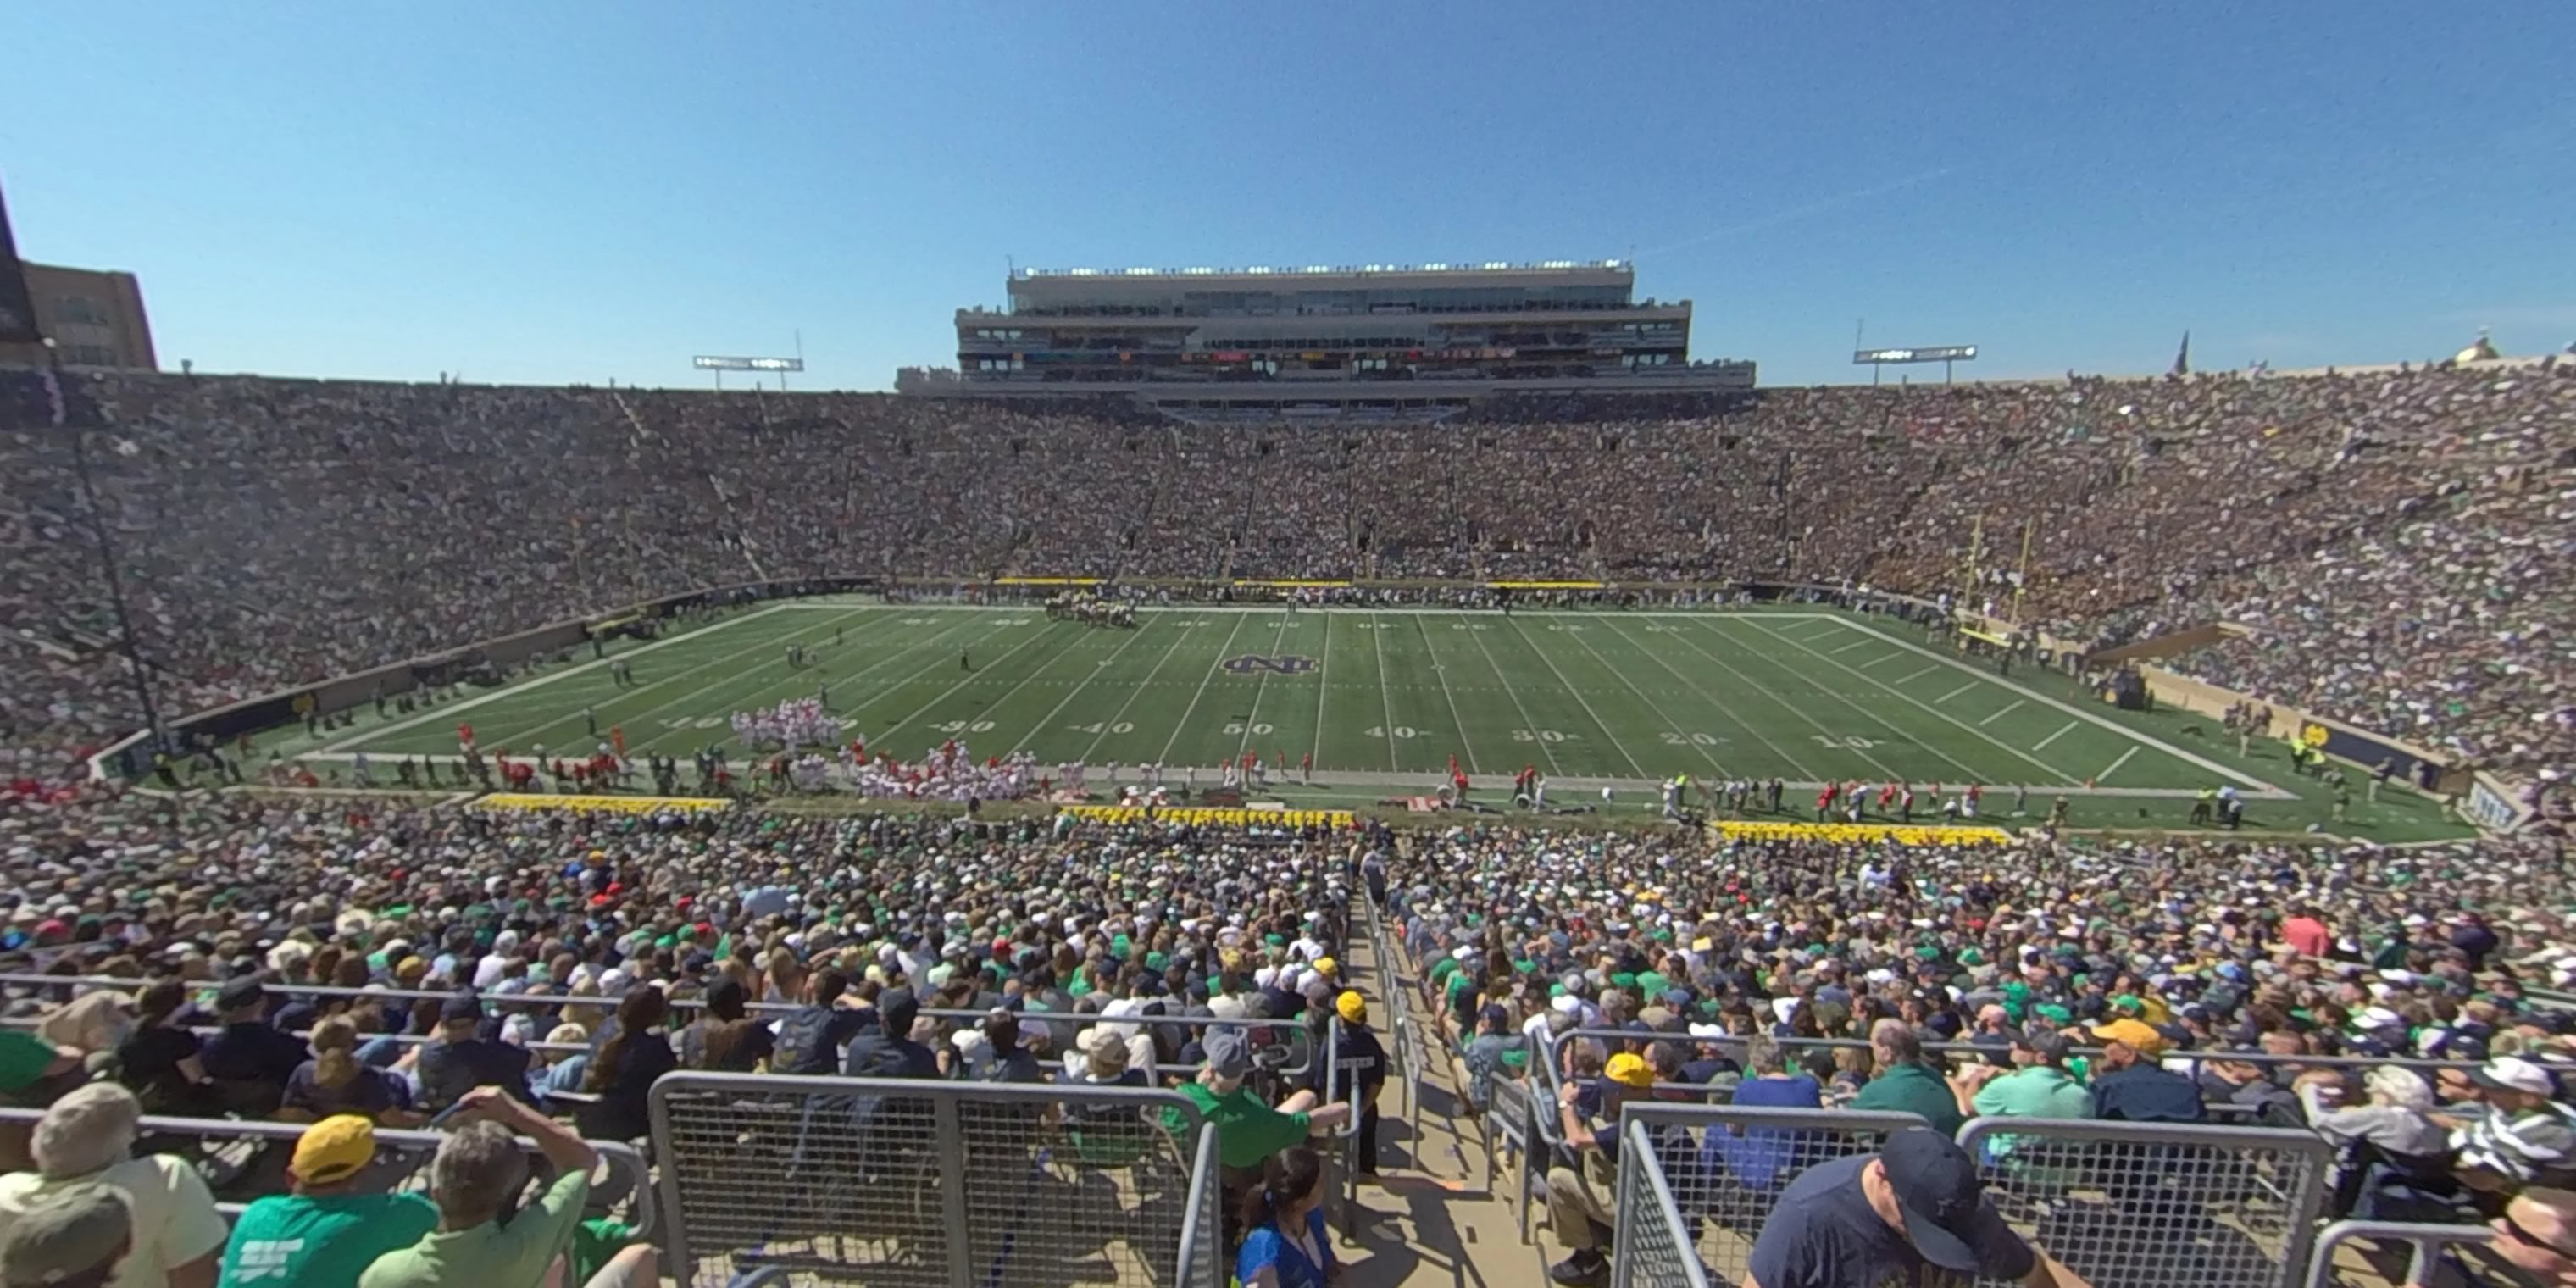 Section 109 at Notre Dame Stadium - RateYourSeats.com